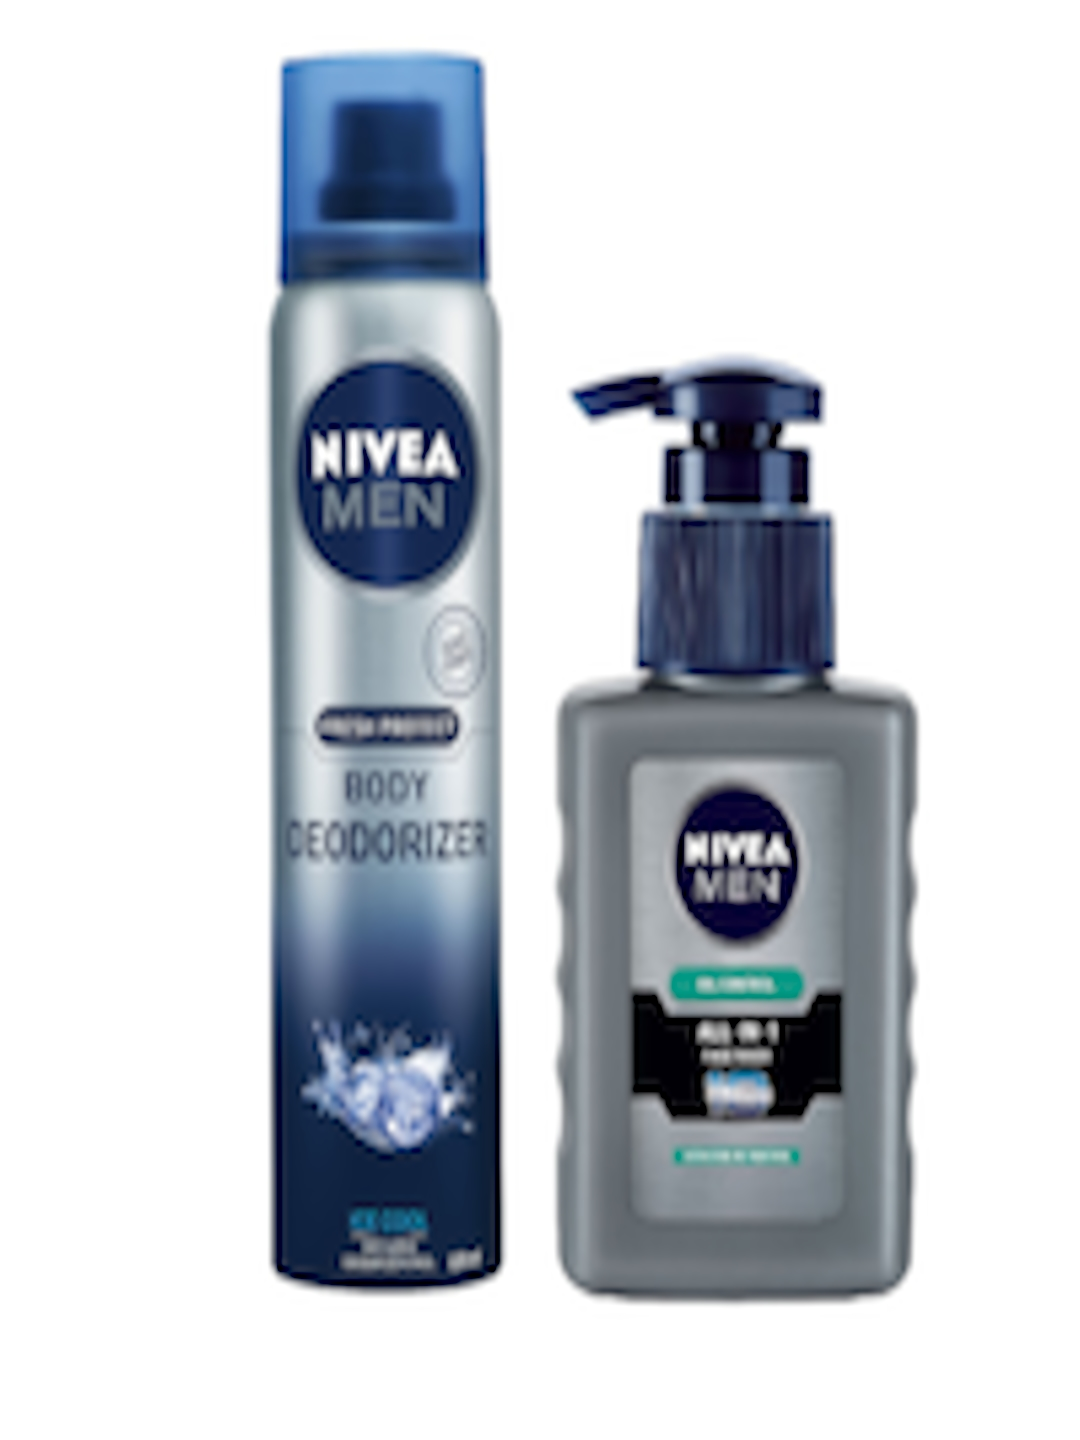 Buy Nivea Men Grooming Kit -  - Personal Care for Men